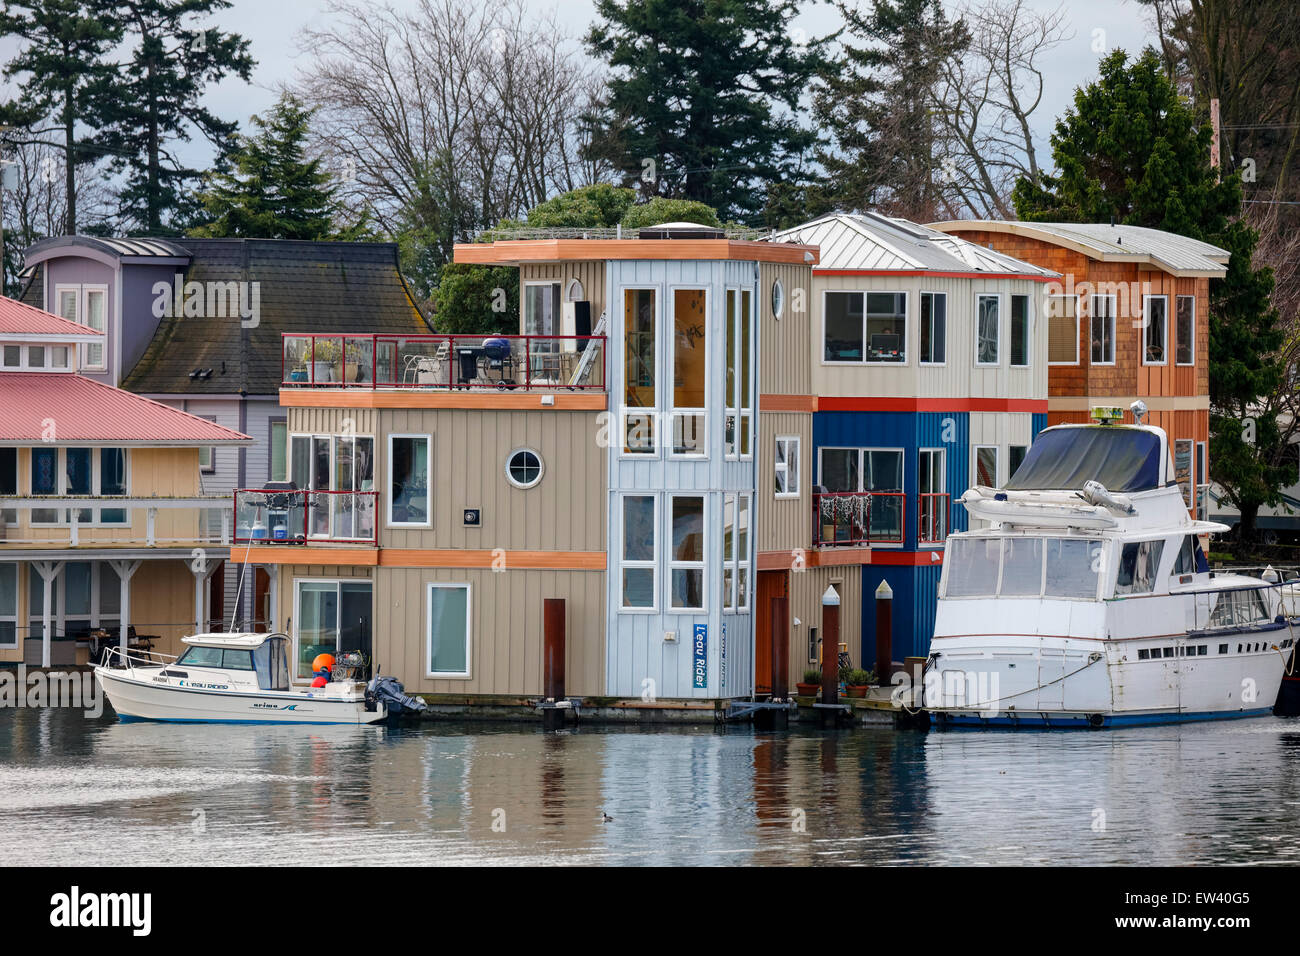 Floating homes at Westbay-Esquimalt, British Columbia, Canada - Stock Image